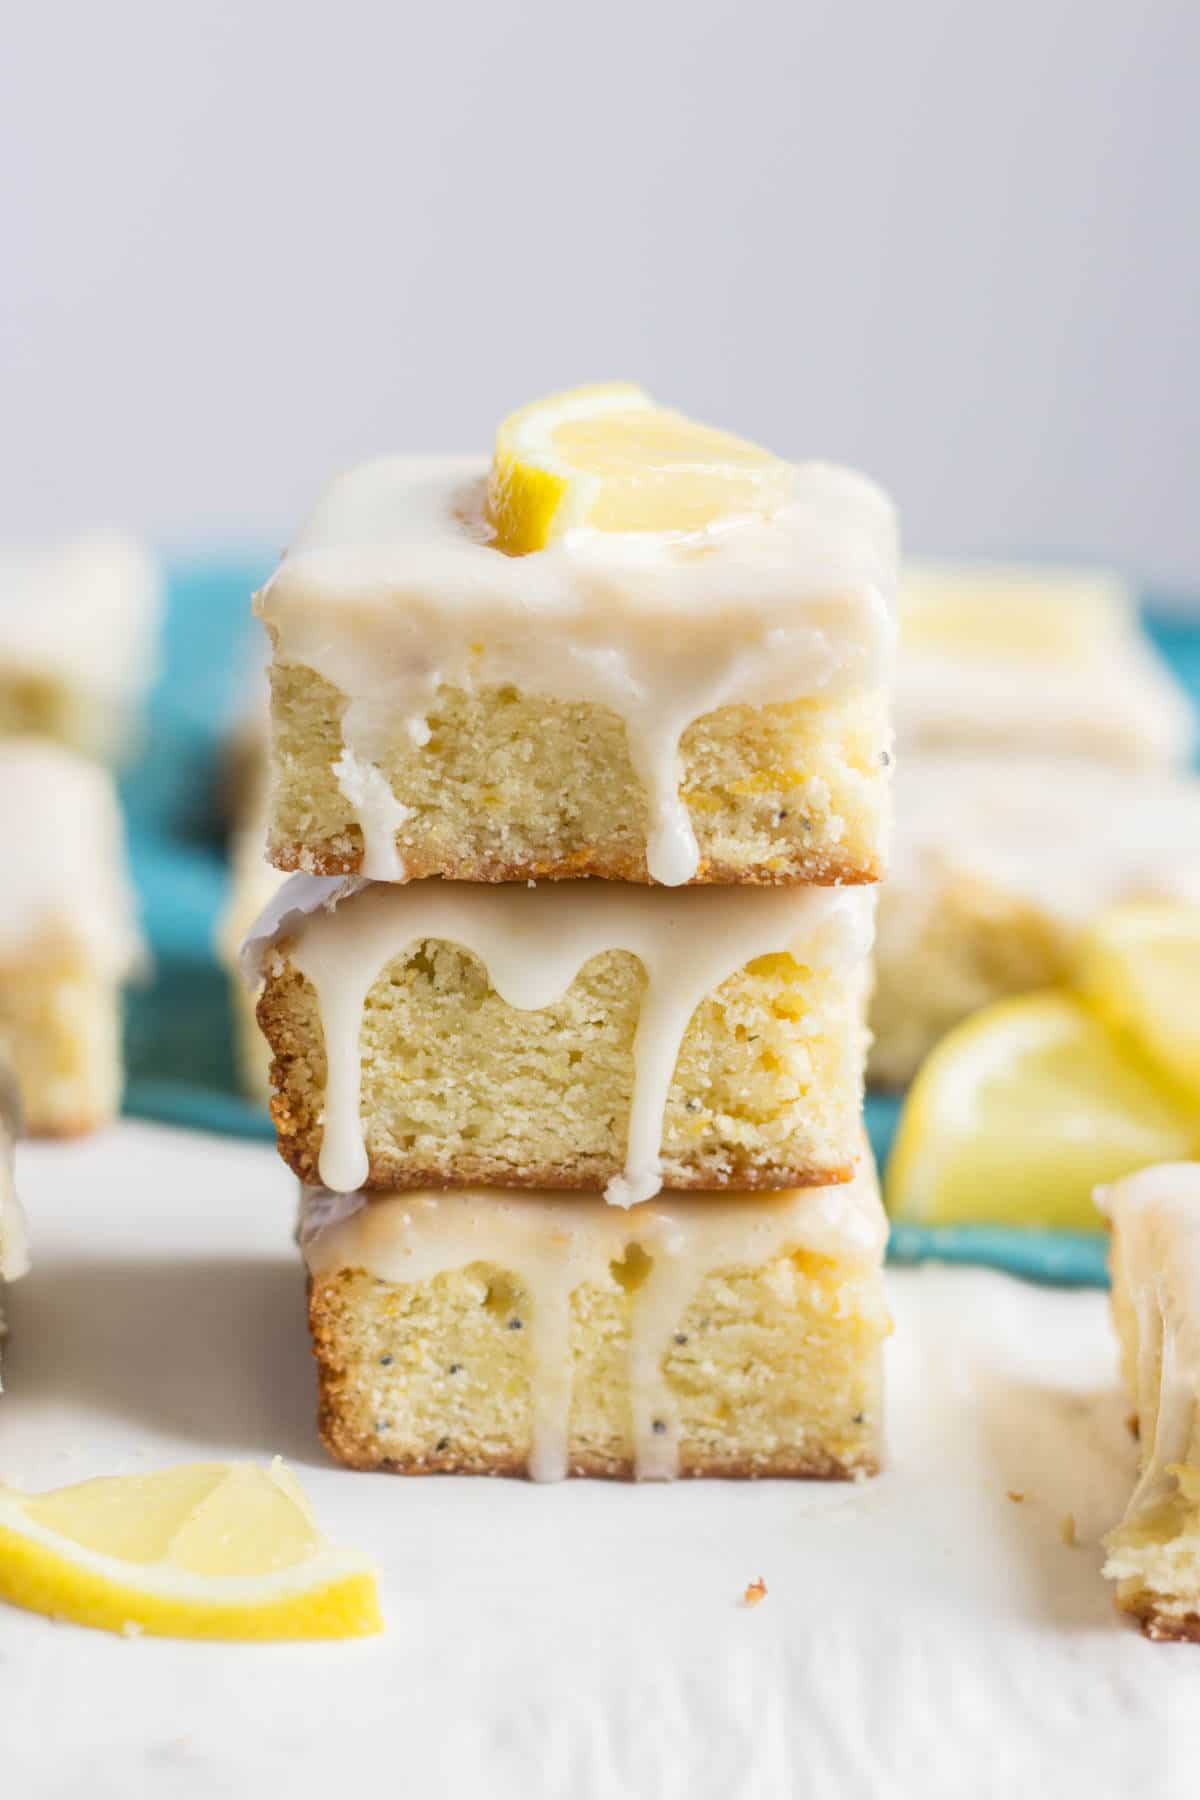 These glazed lemon poppy seed bars are a zingy lemon dessert! These bars are easy to make and are packed with some serious spring flavor. The lemon glaze will leave you wanting more.